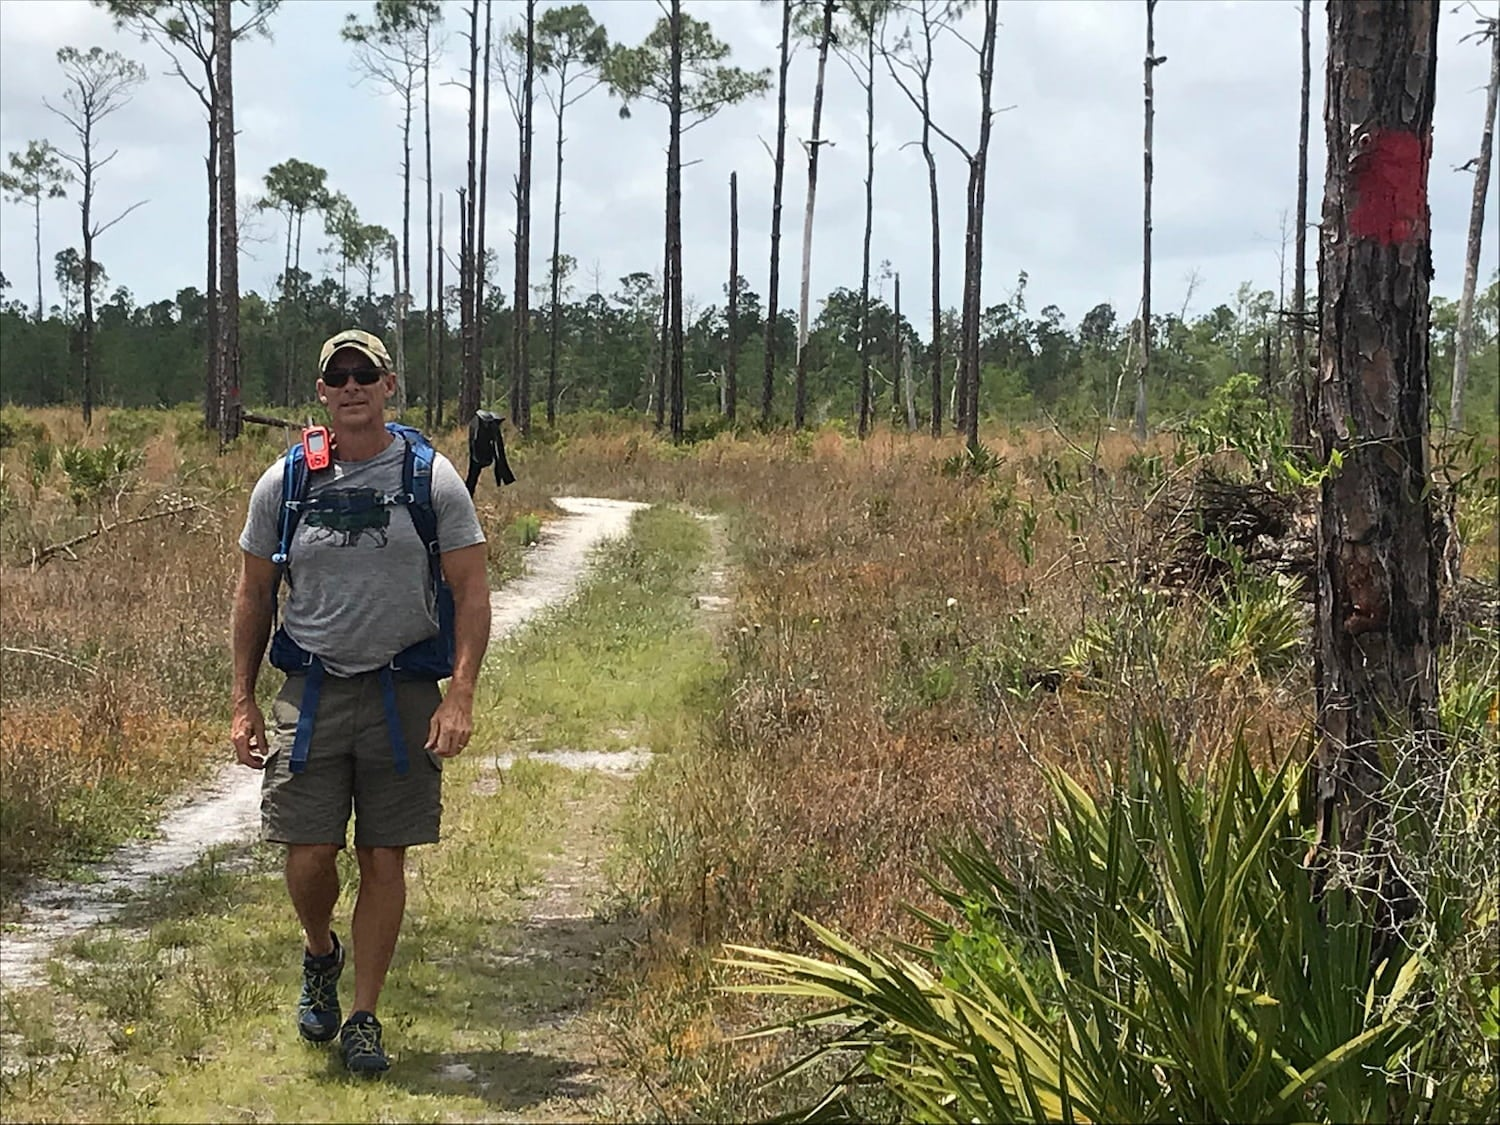 dave hiking on trail with palm trees in background